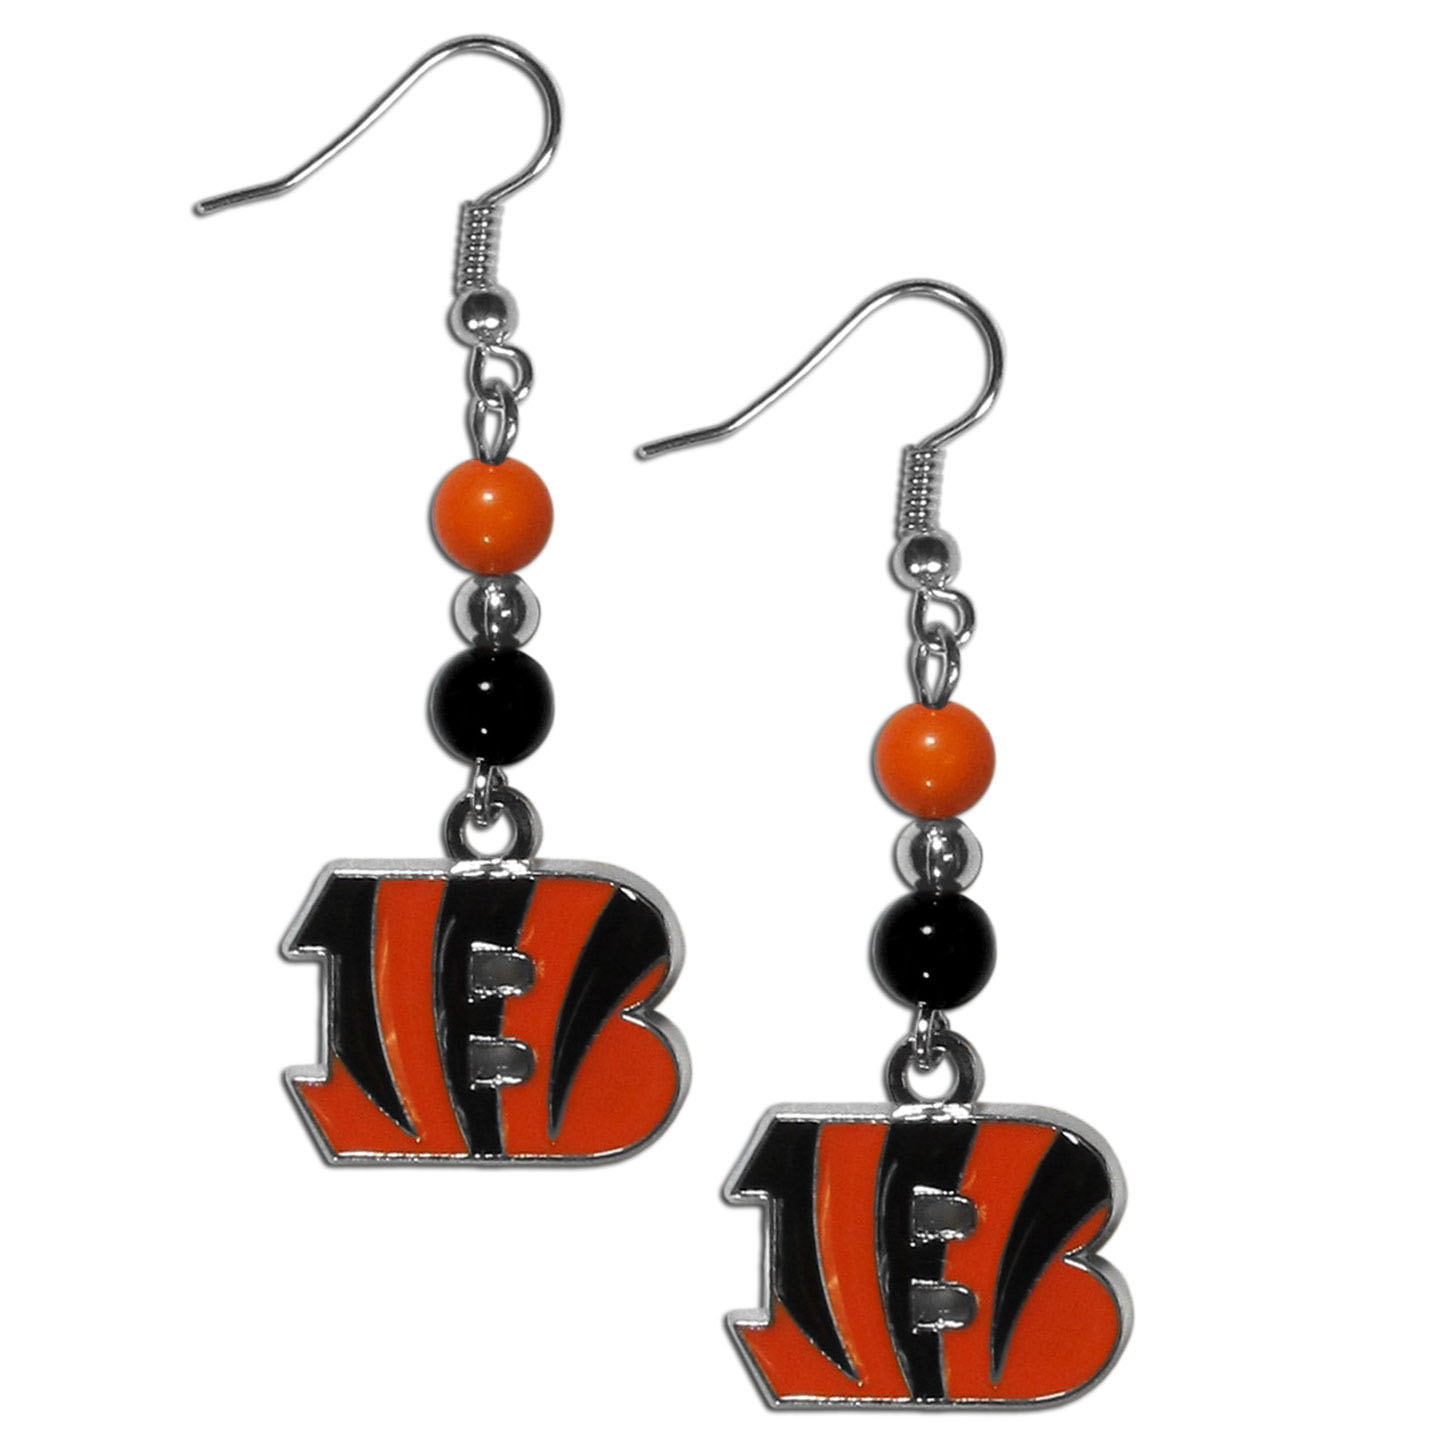 Cincinnati Bengals Fan Bead Dangle Earrings - Love your team, show it off with our Cincinnati Bengals bead dangle earrings! These super cute earrings hang approximately 2 inches and features 2 team colored beads and a high polish team charm. A must have for game day!